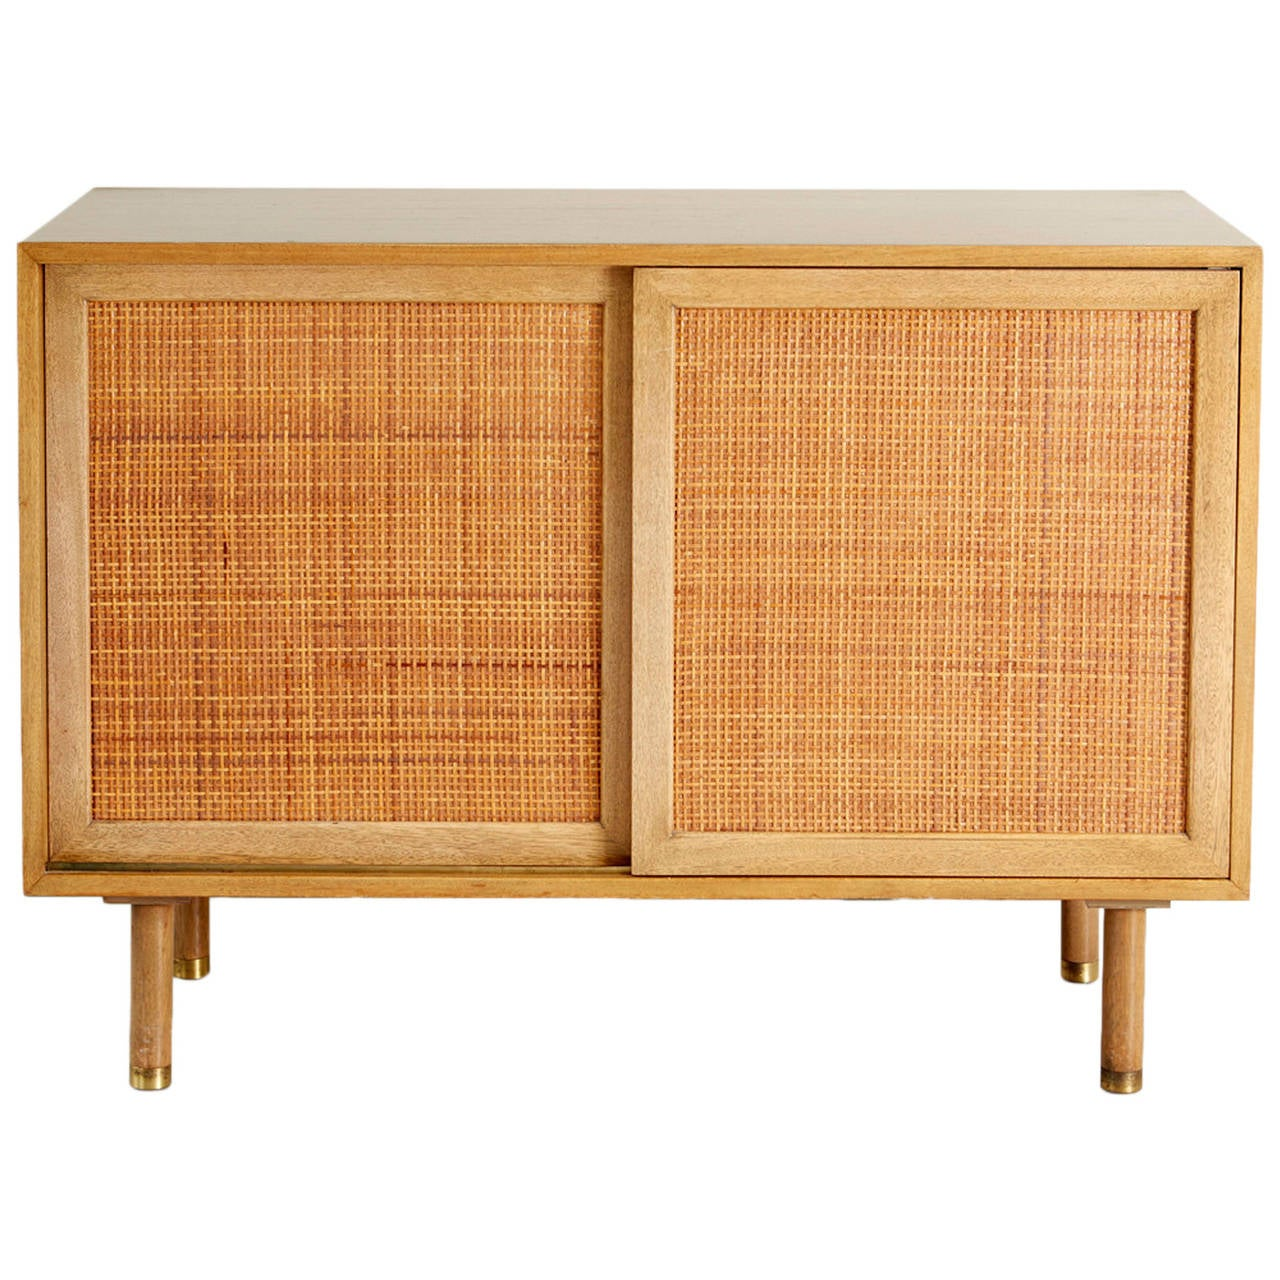 Harvey Probber Walnut And Rattan Credenza At 1stdibs